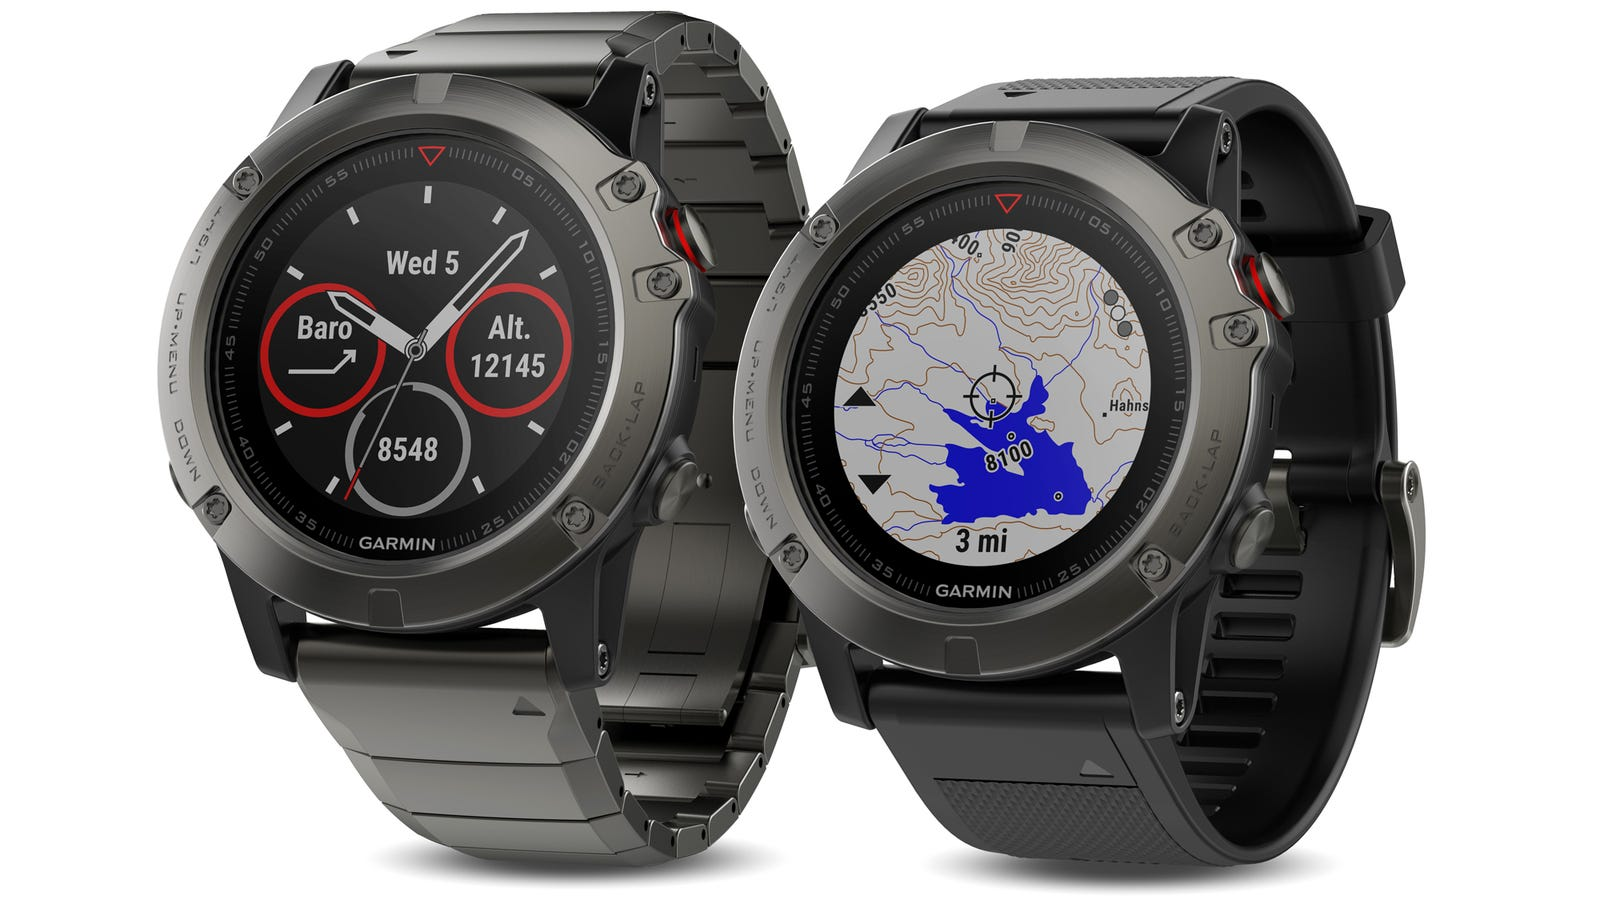 suunto very ambit trackers watches and a comparison basic at tracker watch suuntos of price allow to sport keep will best tracking is capable reasonable you solid the reviews activity fitness track